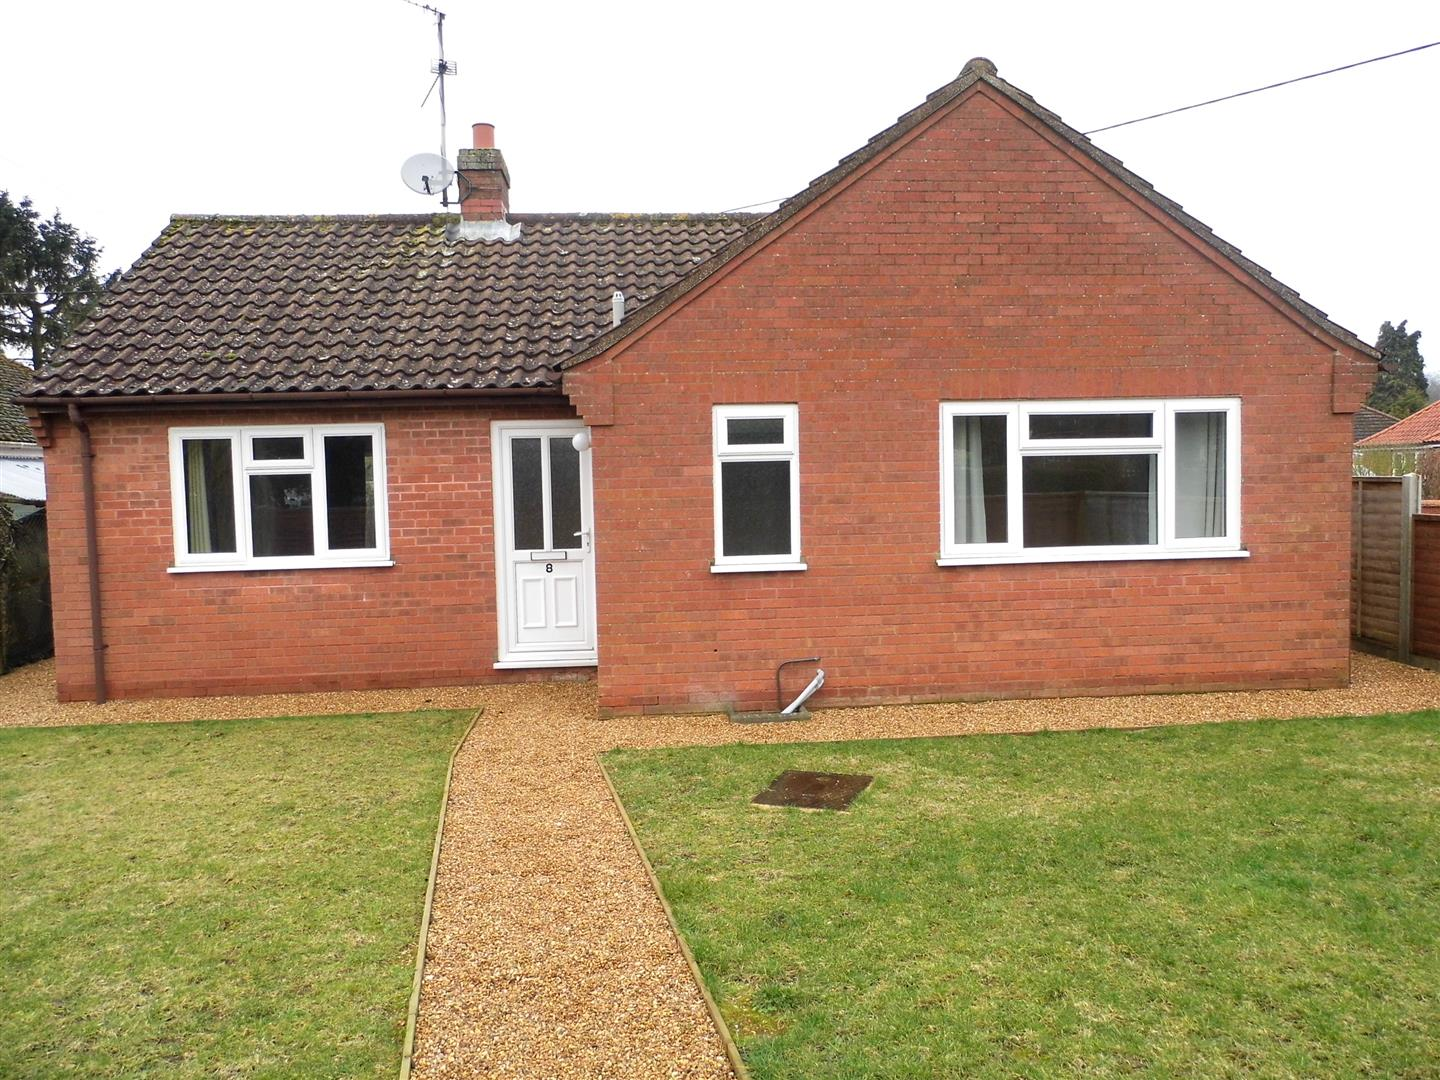 2 bed detached bungalow to rent in King's Lynn, PE31 6NH  - Property Image 1